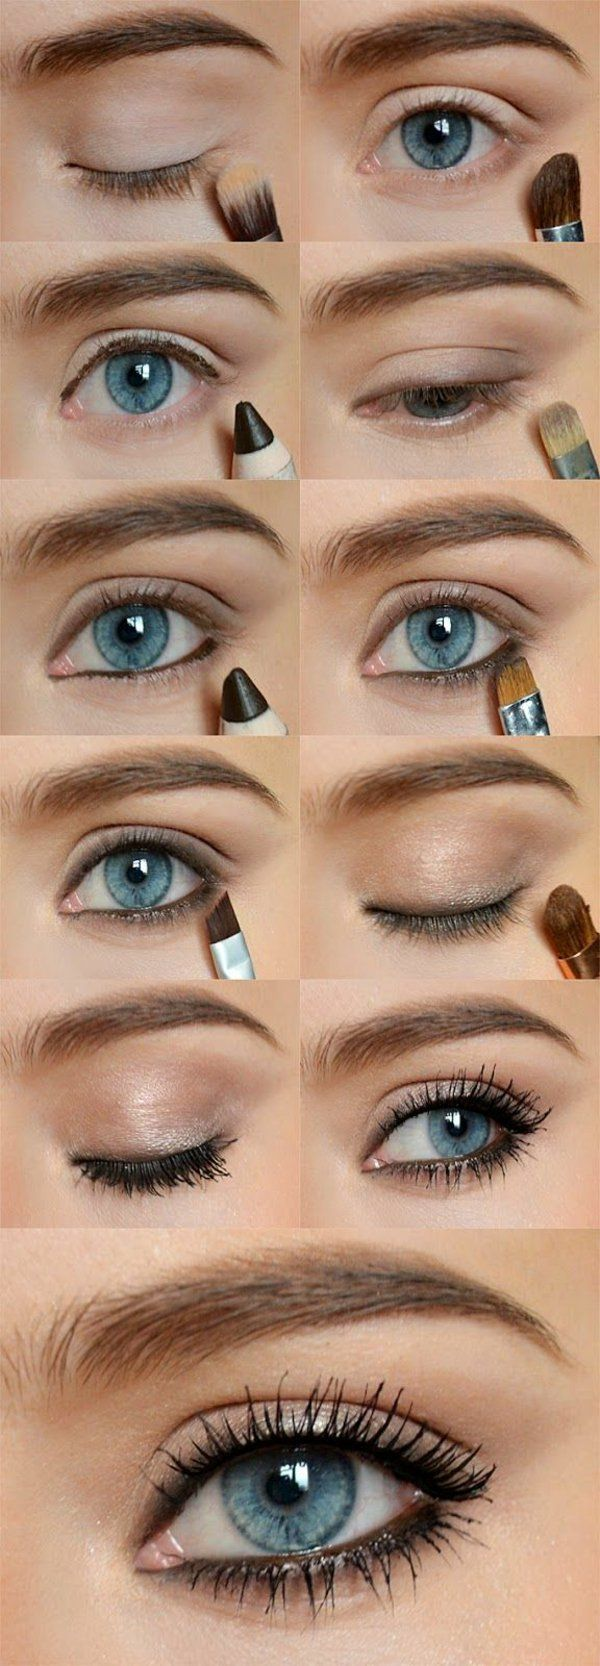 Barbie Makeup: 25+ Best Ideas About Barbie Makeup On Pinterest